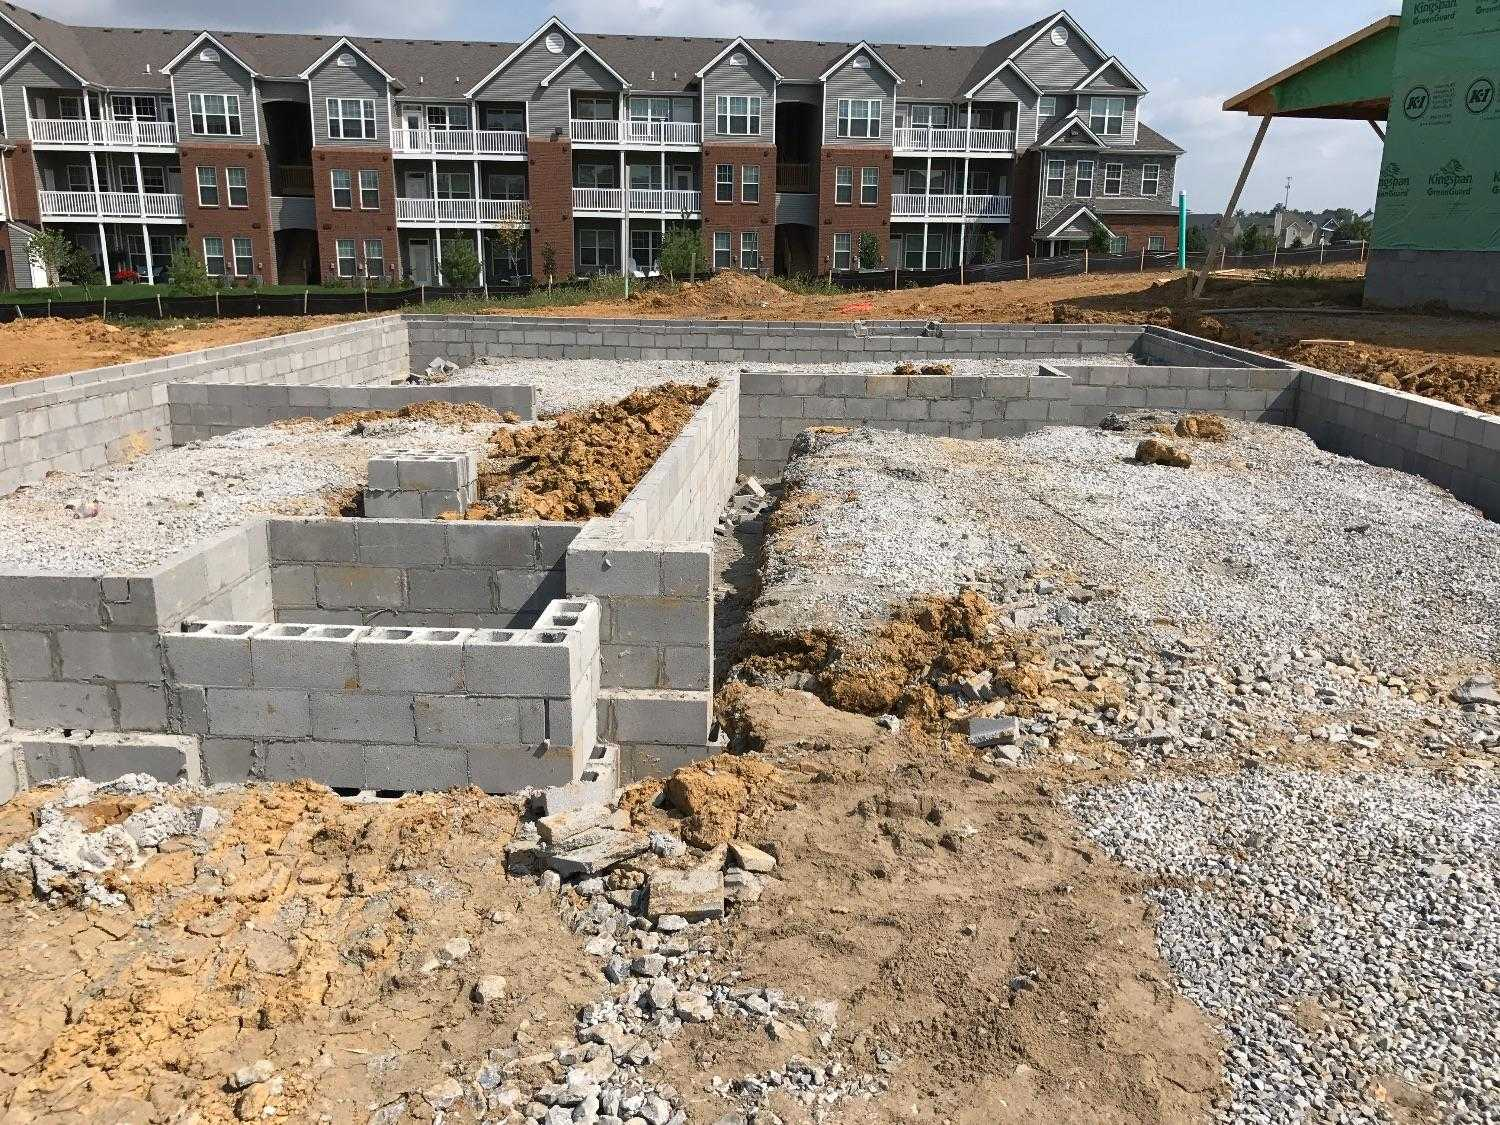 $318,374 - 4Br/3Ba -  for Sale in Chilesburg, Lexington